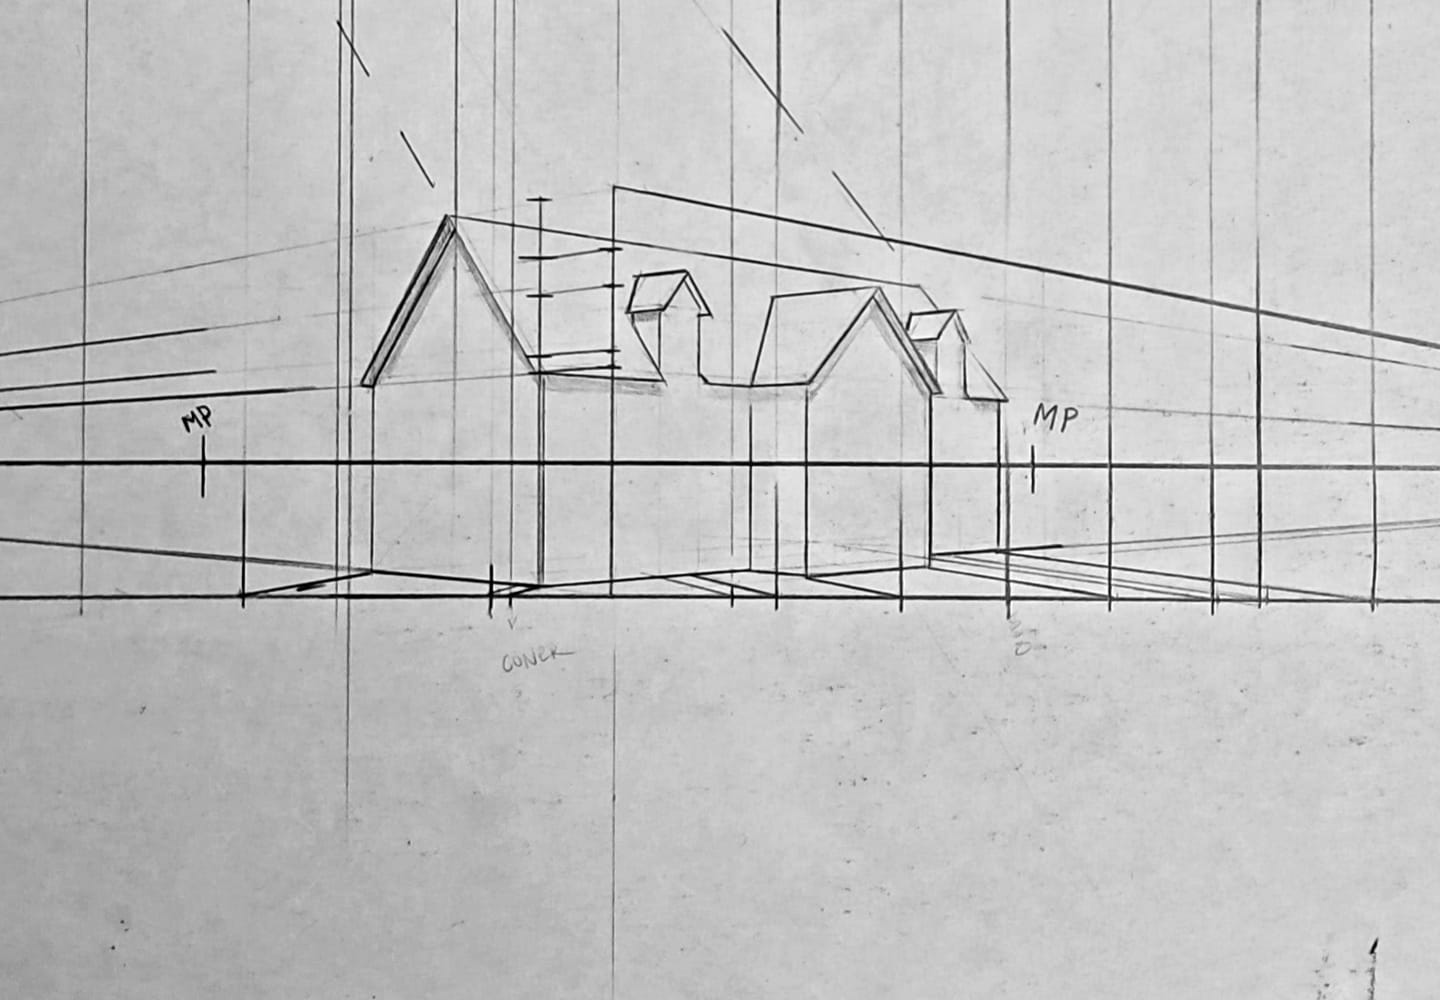 Image of one point perspective boxes receding to a vanishing point on the horizon line. Show some of the concepts to be taught in Kevin McCain's drawing classes on perspective drawing.